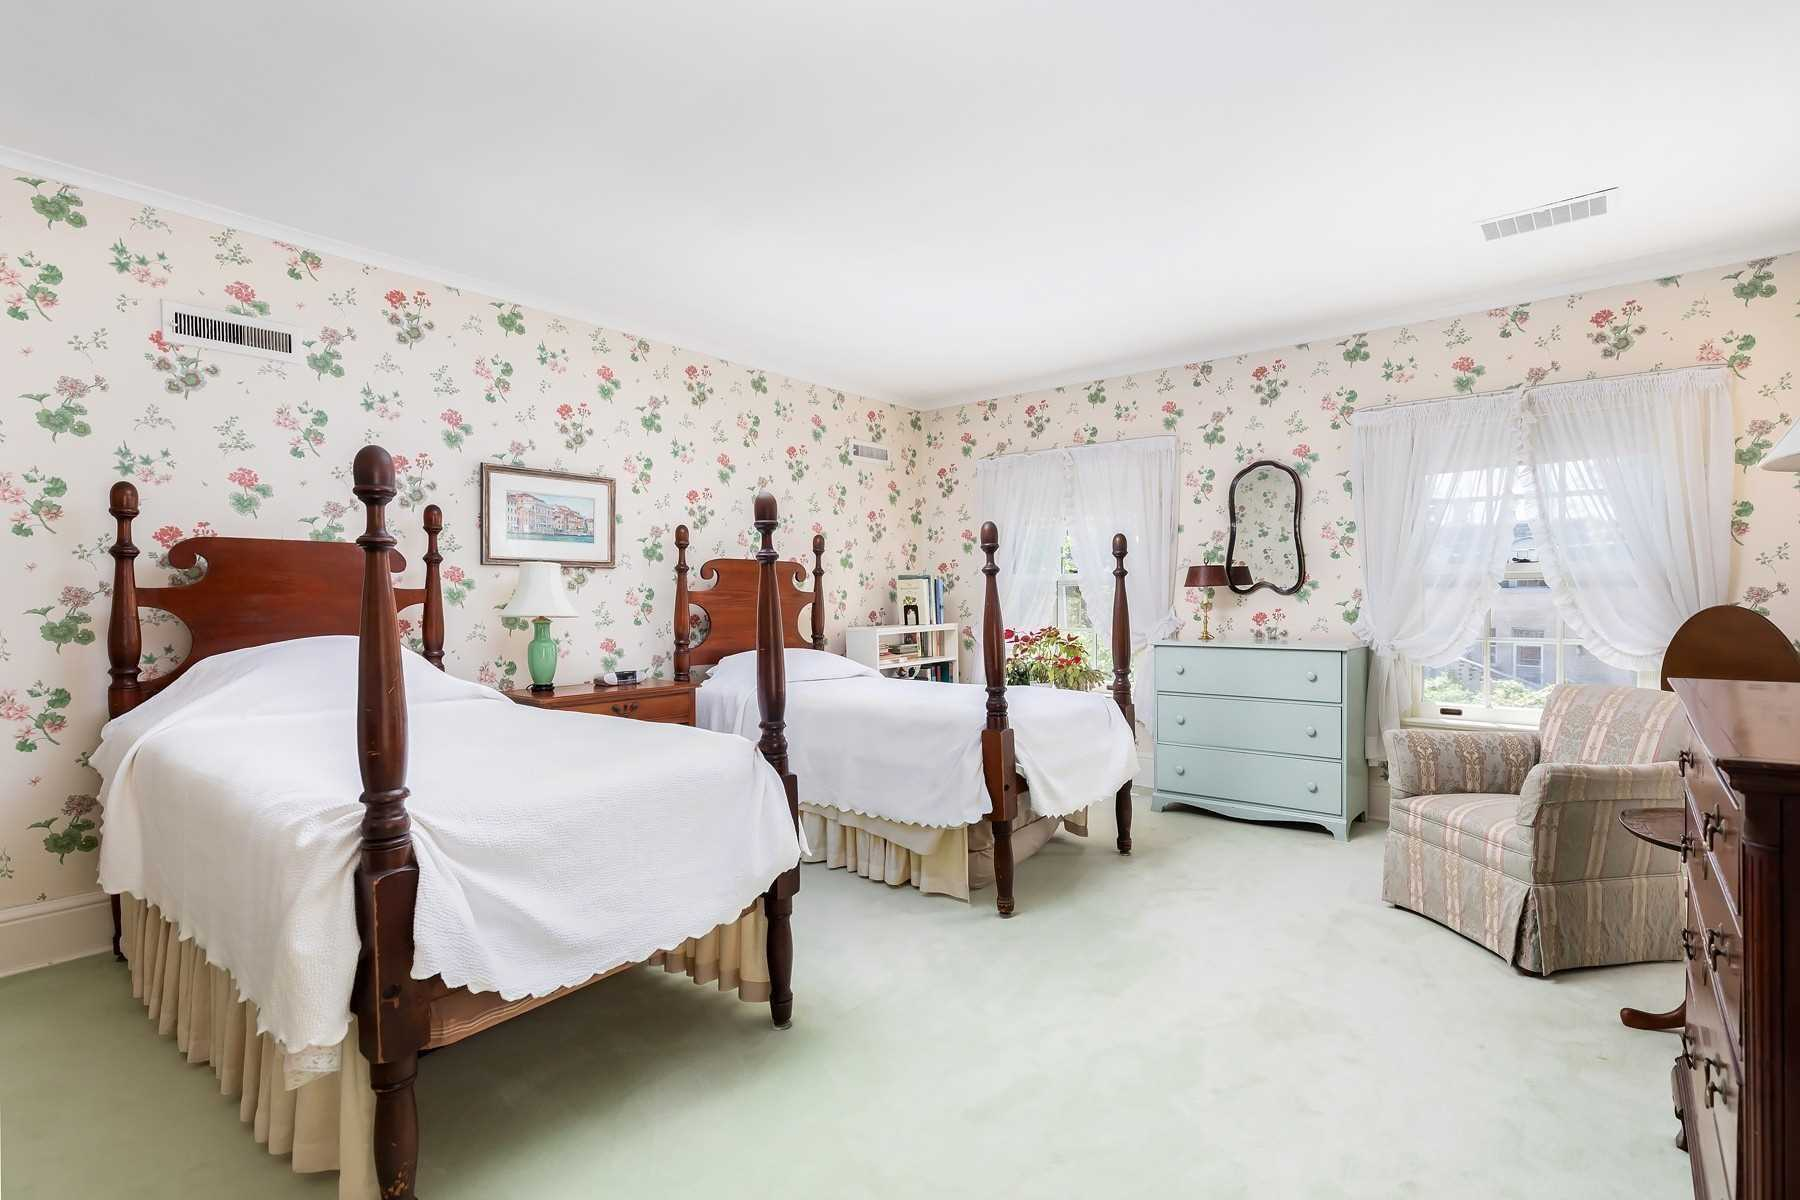 91 Glen Edyth Dr, Toronto, Ontario M4V2V8, 5 Bedrooms Bedrooms, 10 Rooms Rooms,6 BathroomsBathrooms,Detached,For Sale,Glen Edyth,C4830460